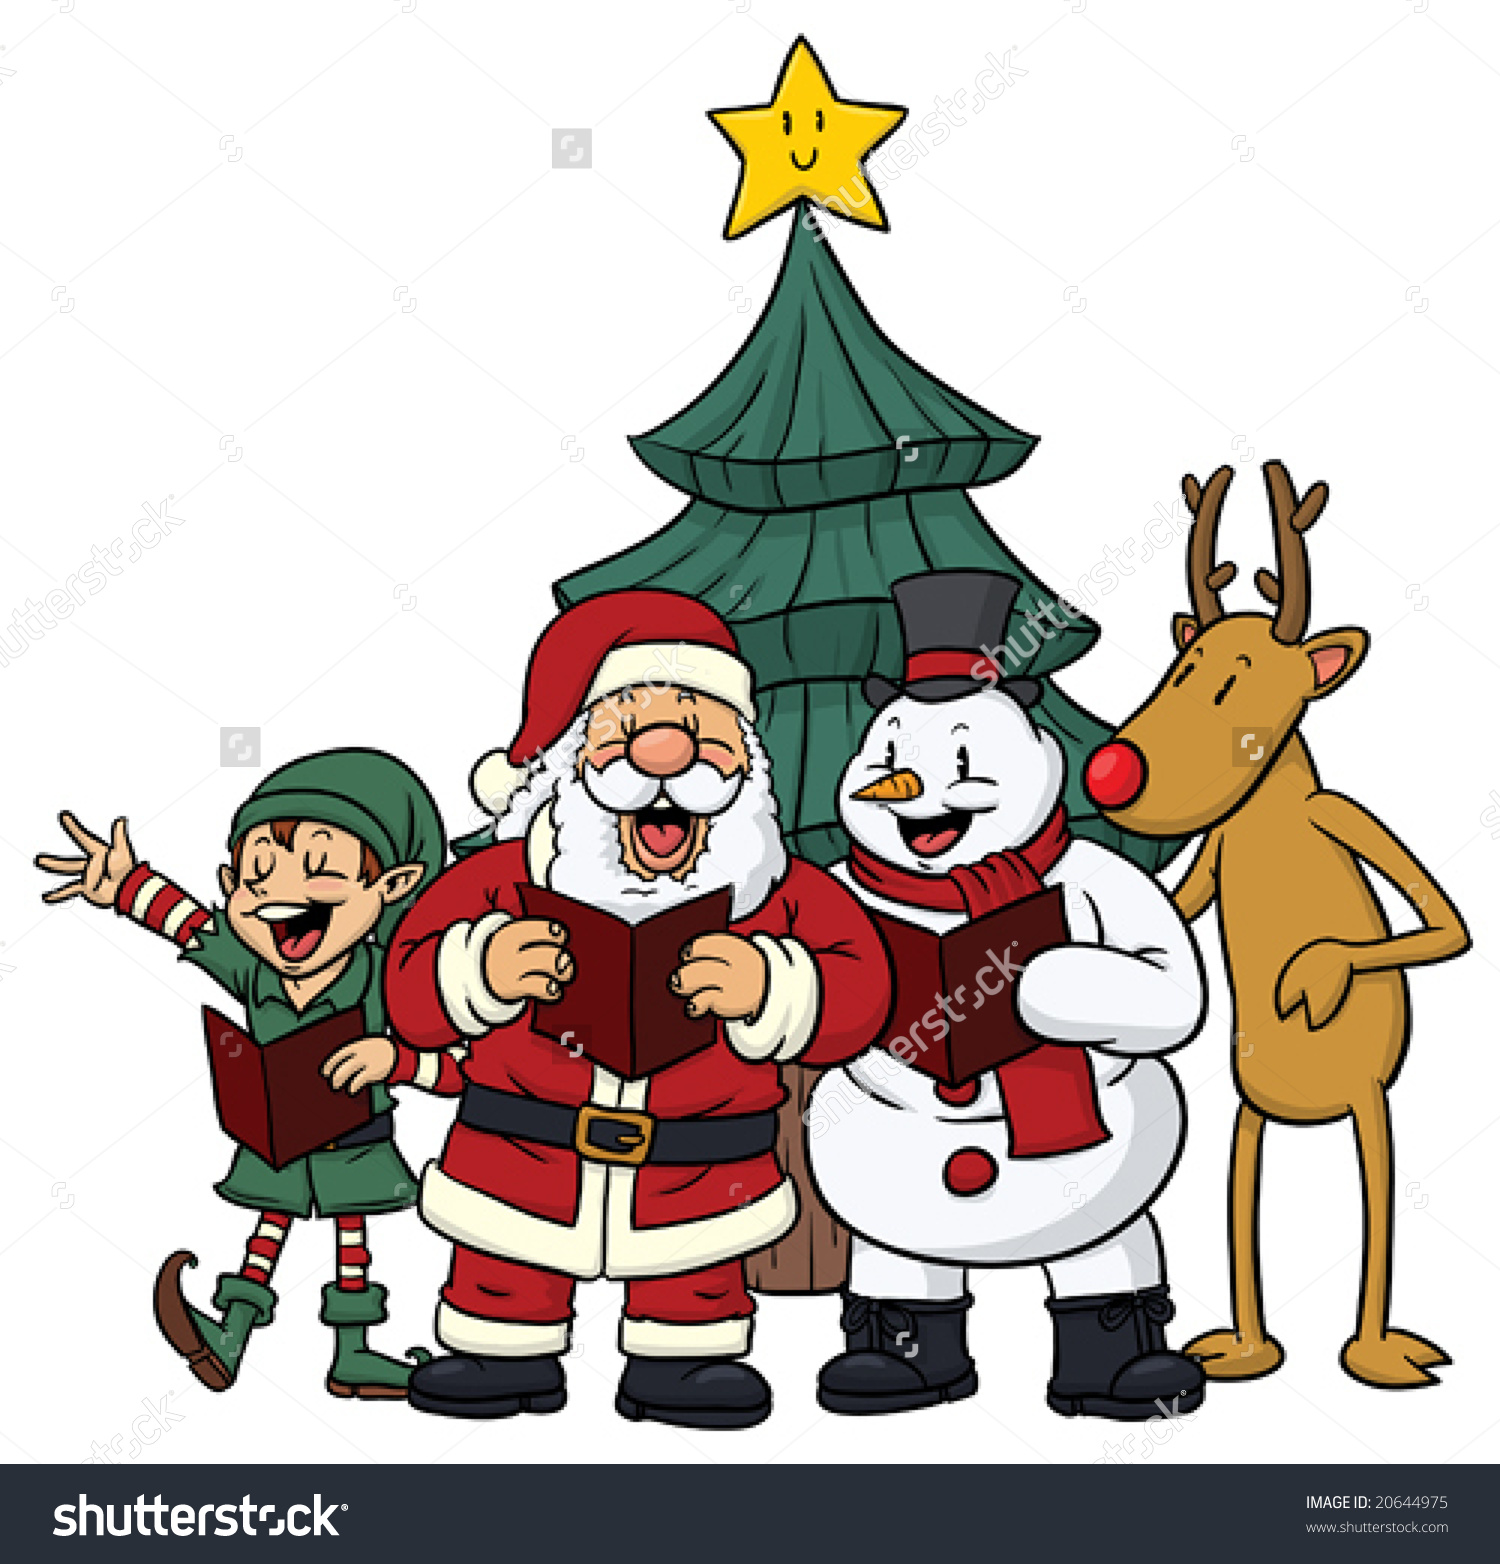 Cute Cartoon Christmas Characters Singing Stock Vector.